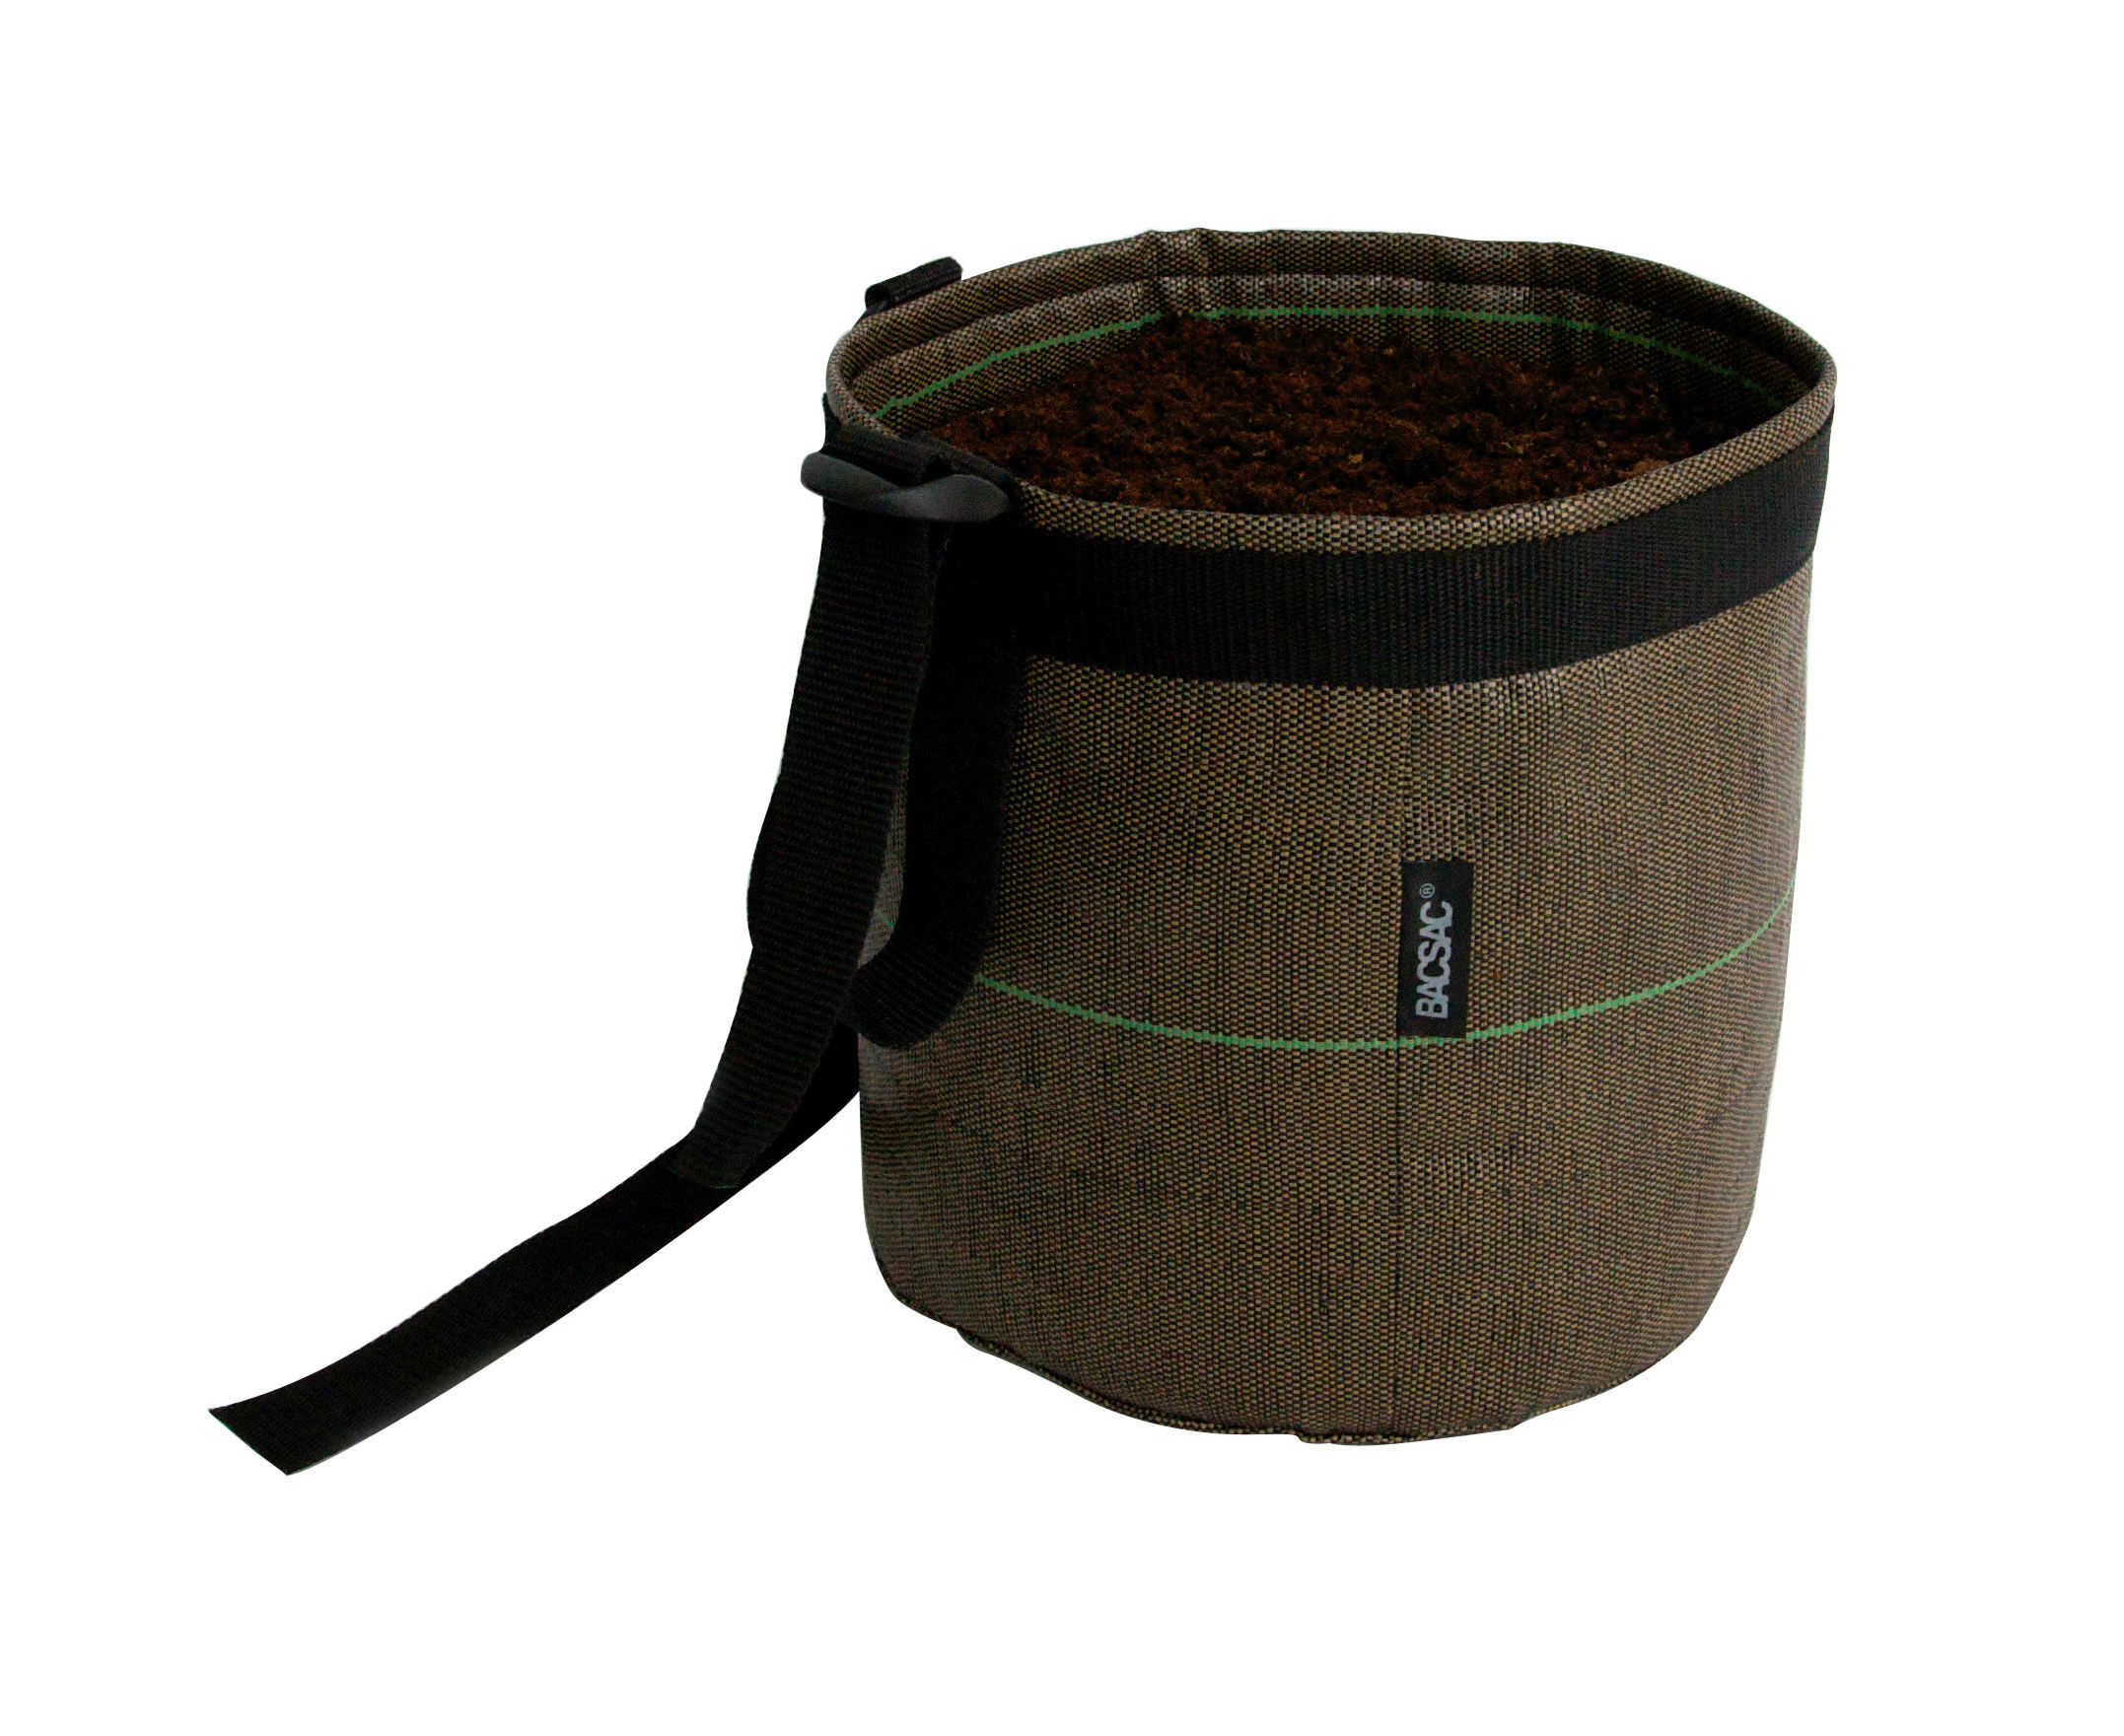 Outdoor - Pots & Plants - Suspendu Geotextile Hanging pot - 3 L - Outdoor by Bacsac - Brown - 3L - Geotextile cloth